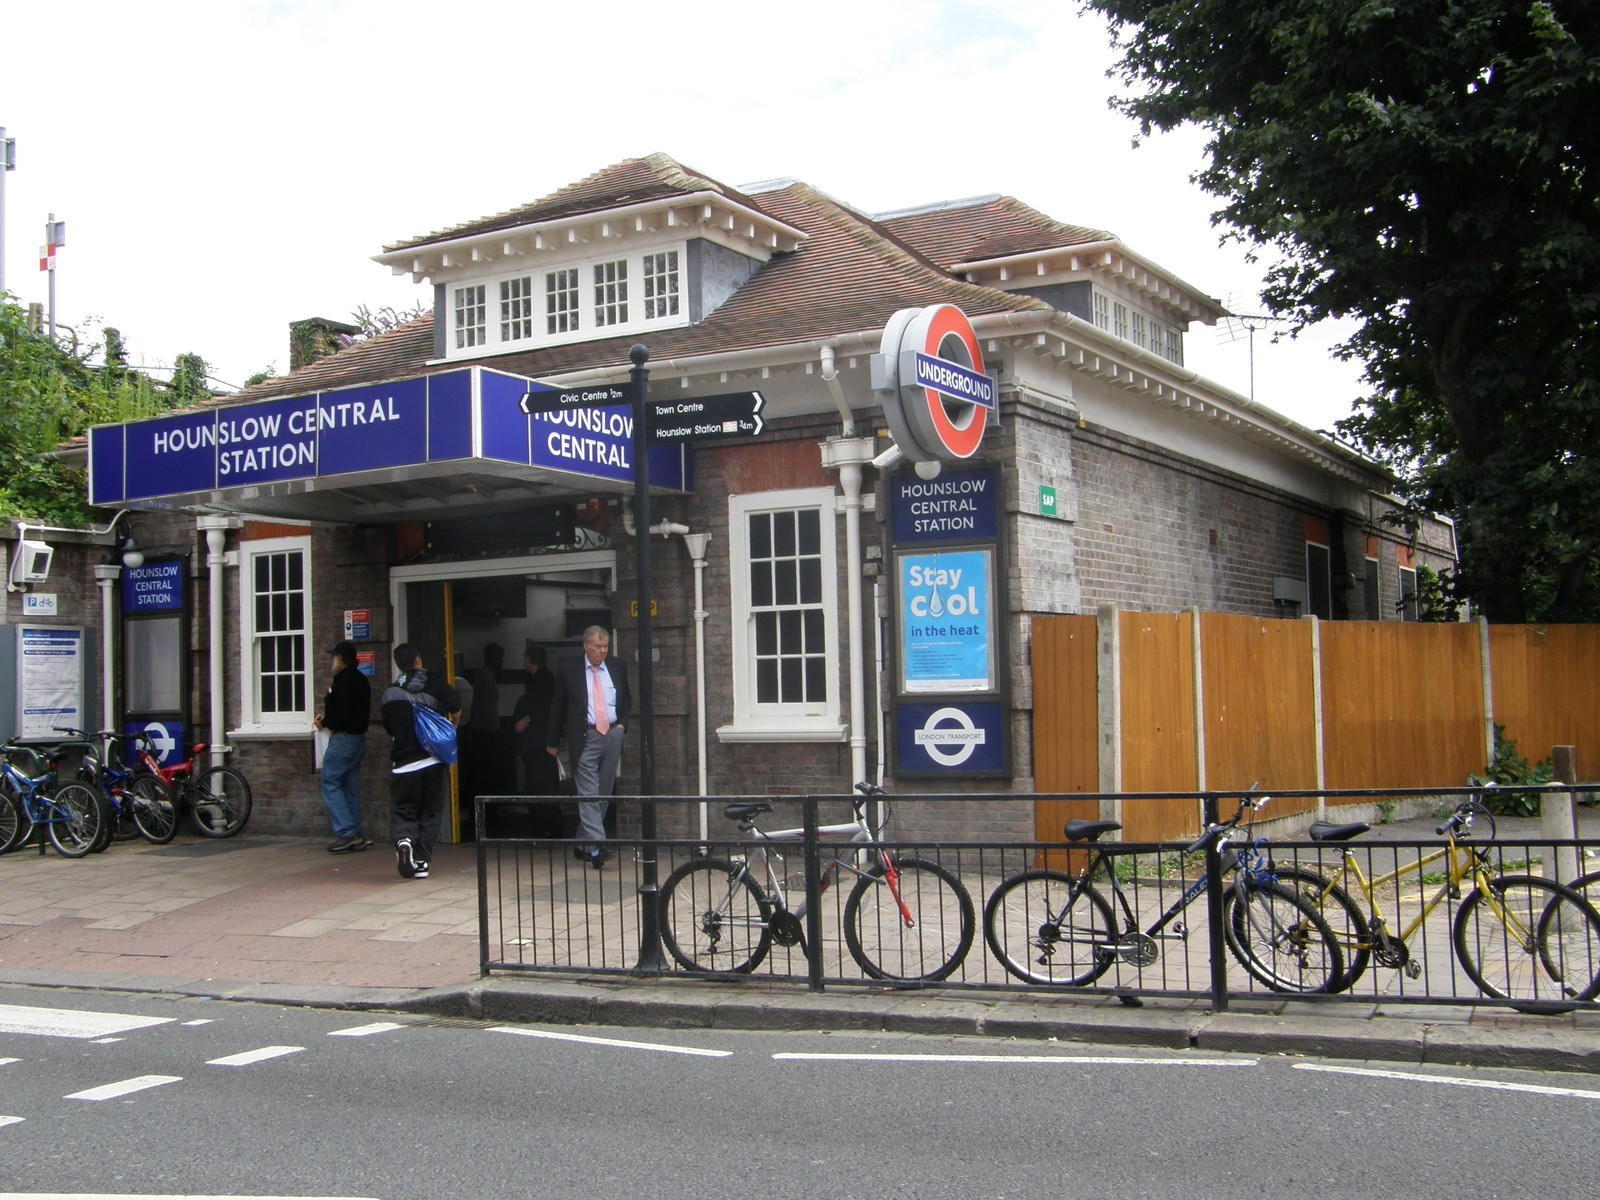 Hounslow Central station